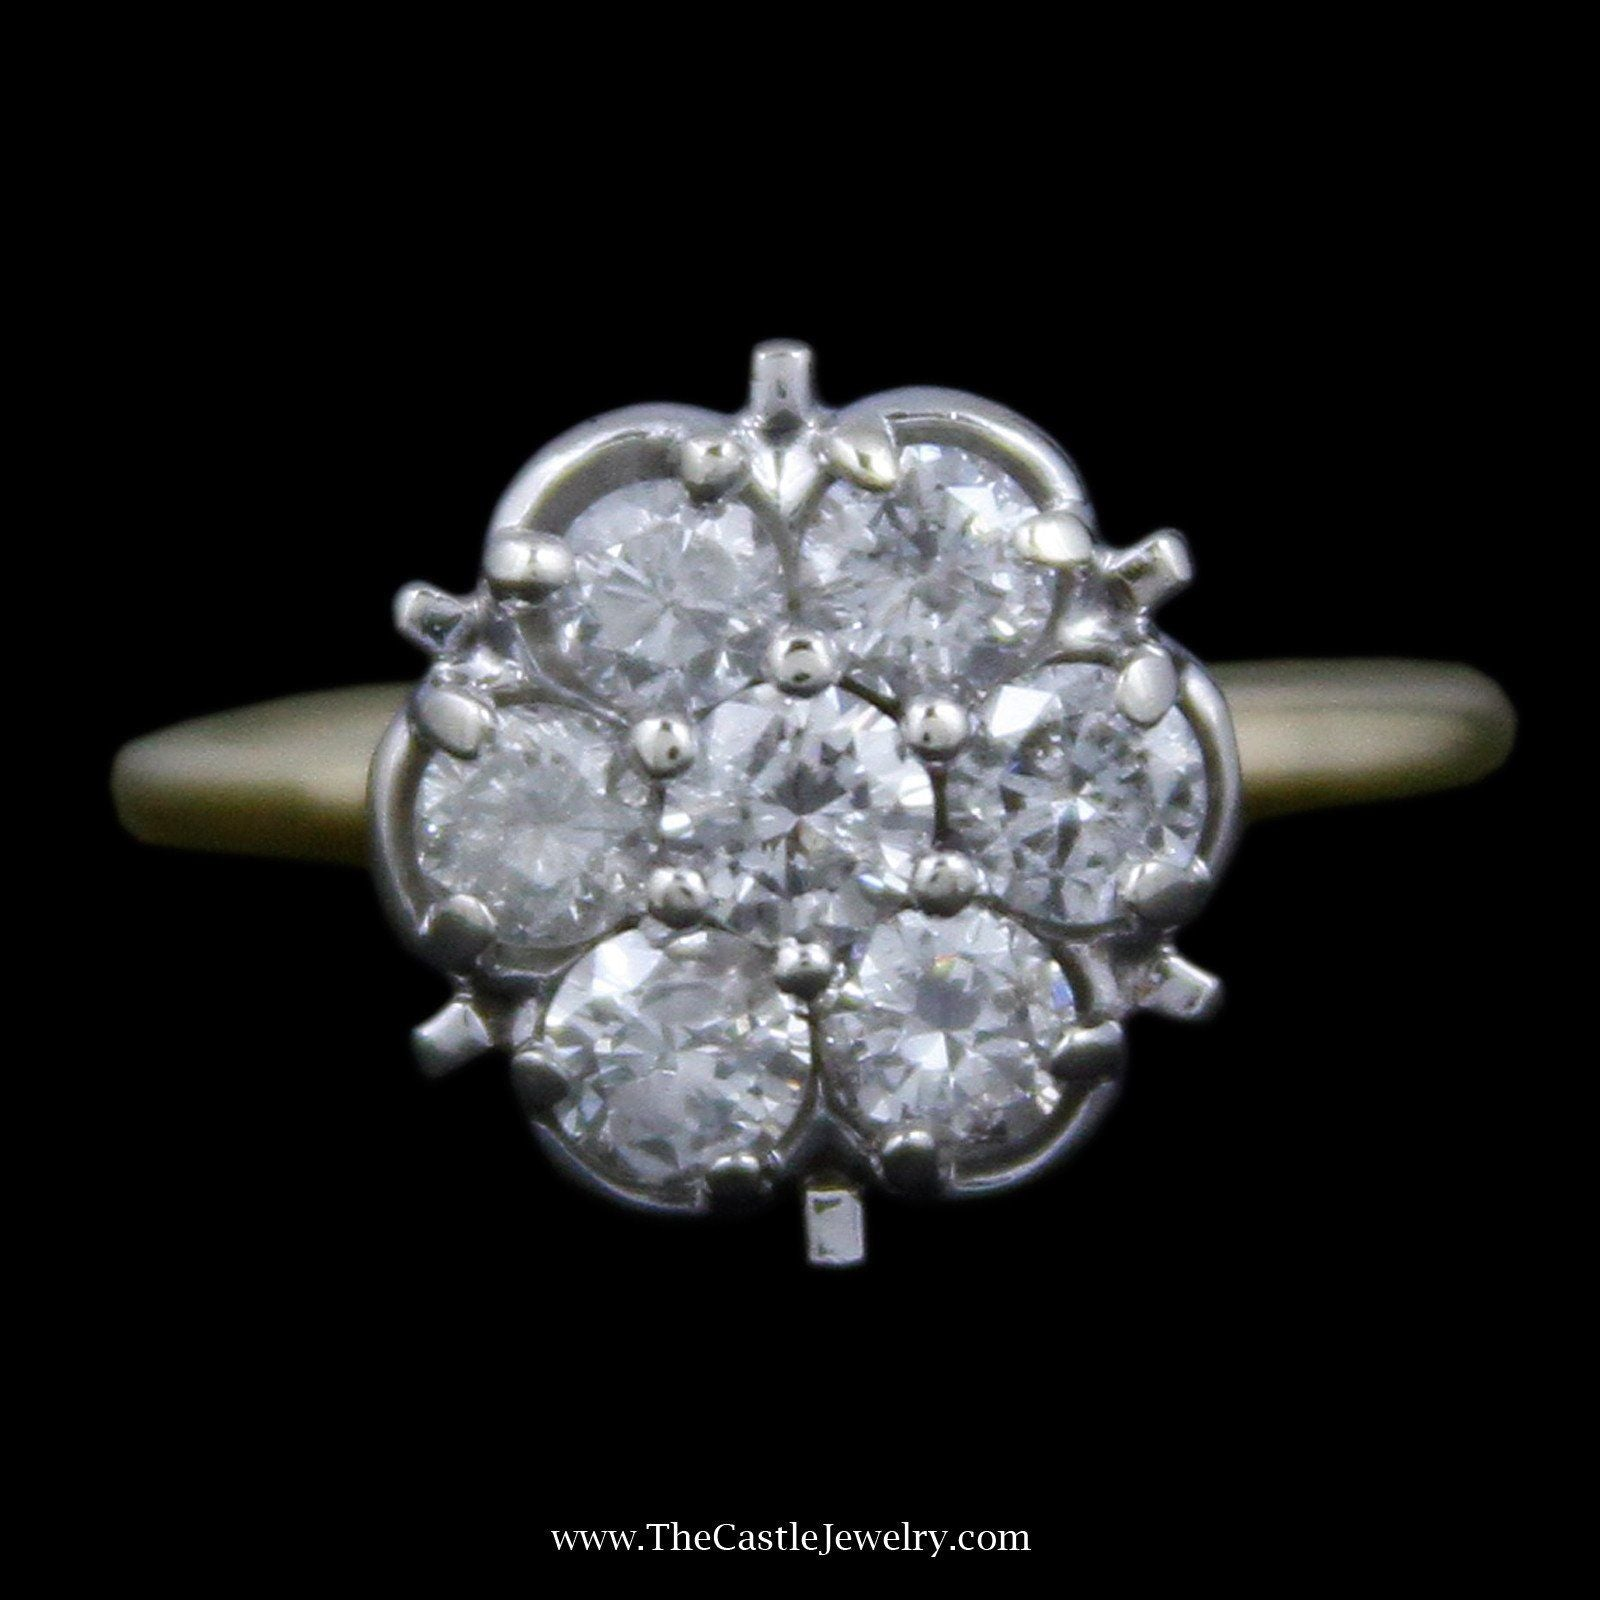 Gorgeous Round Diamond Cluster Ring with 7 Round Brilliant Cut Diamonds